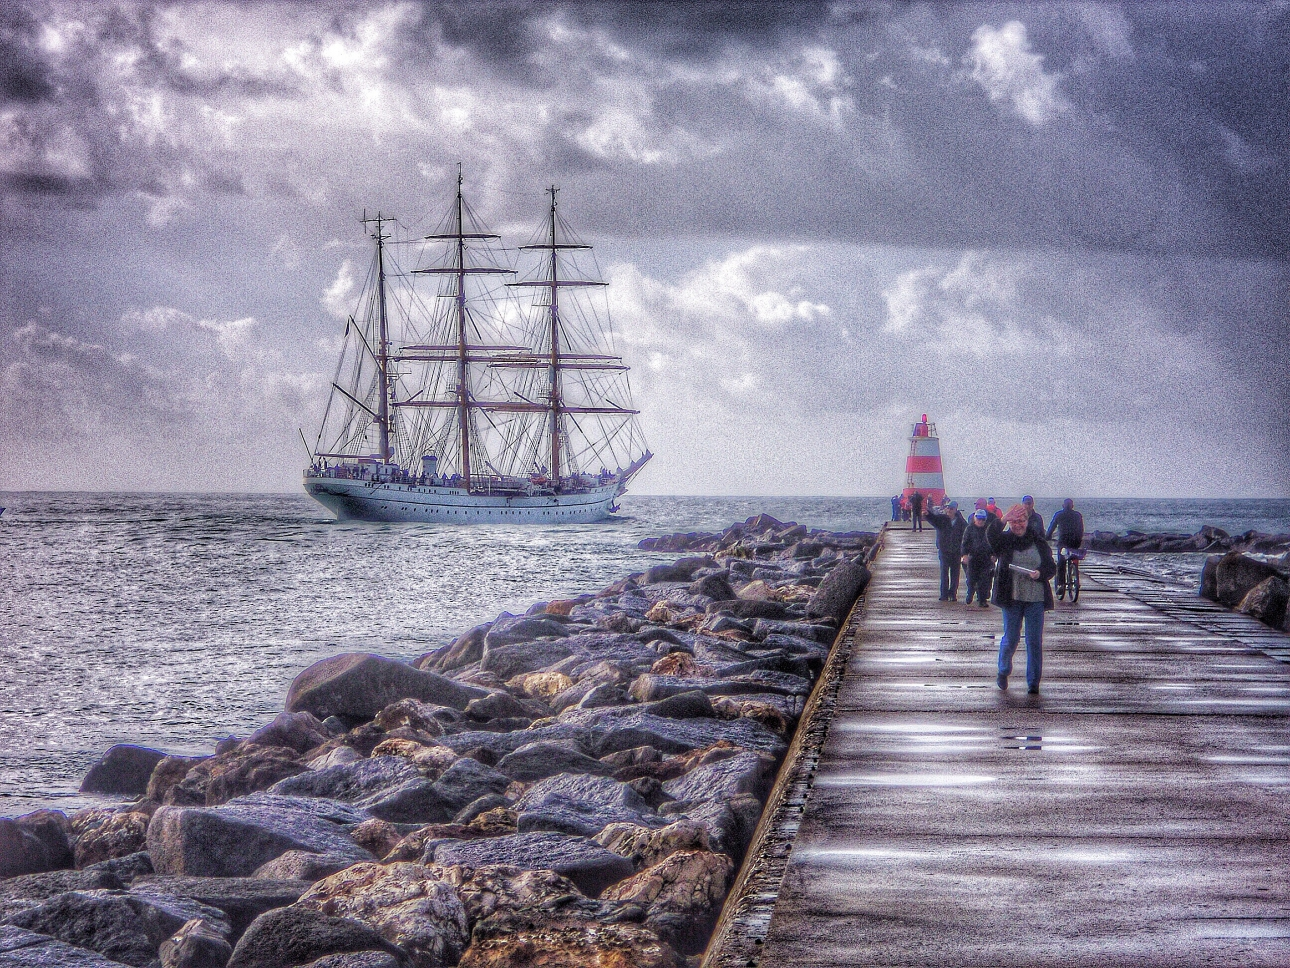 Gorch Fock in Portimao